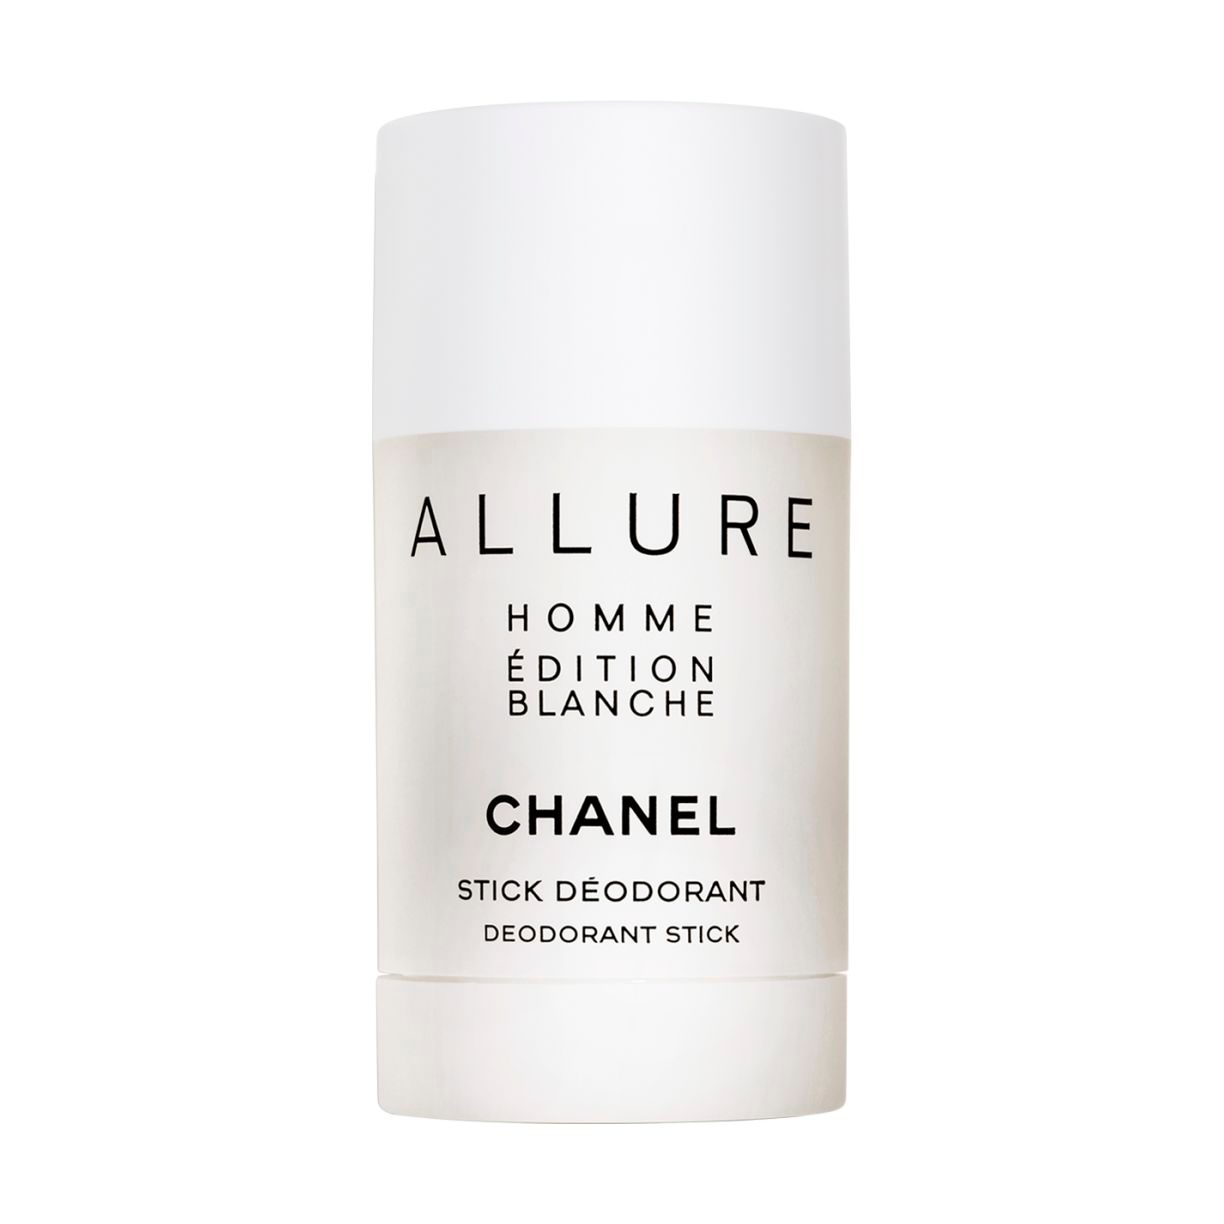 ALLURE HOMME ÉDITION BLANCHE DEODORANT STICK 60G